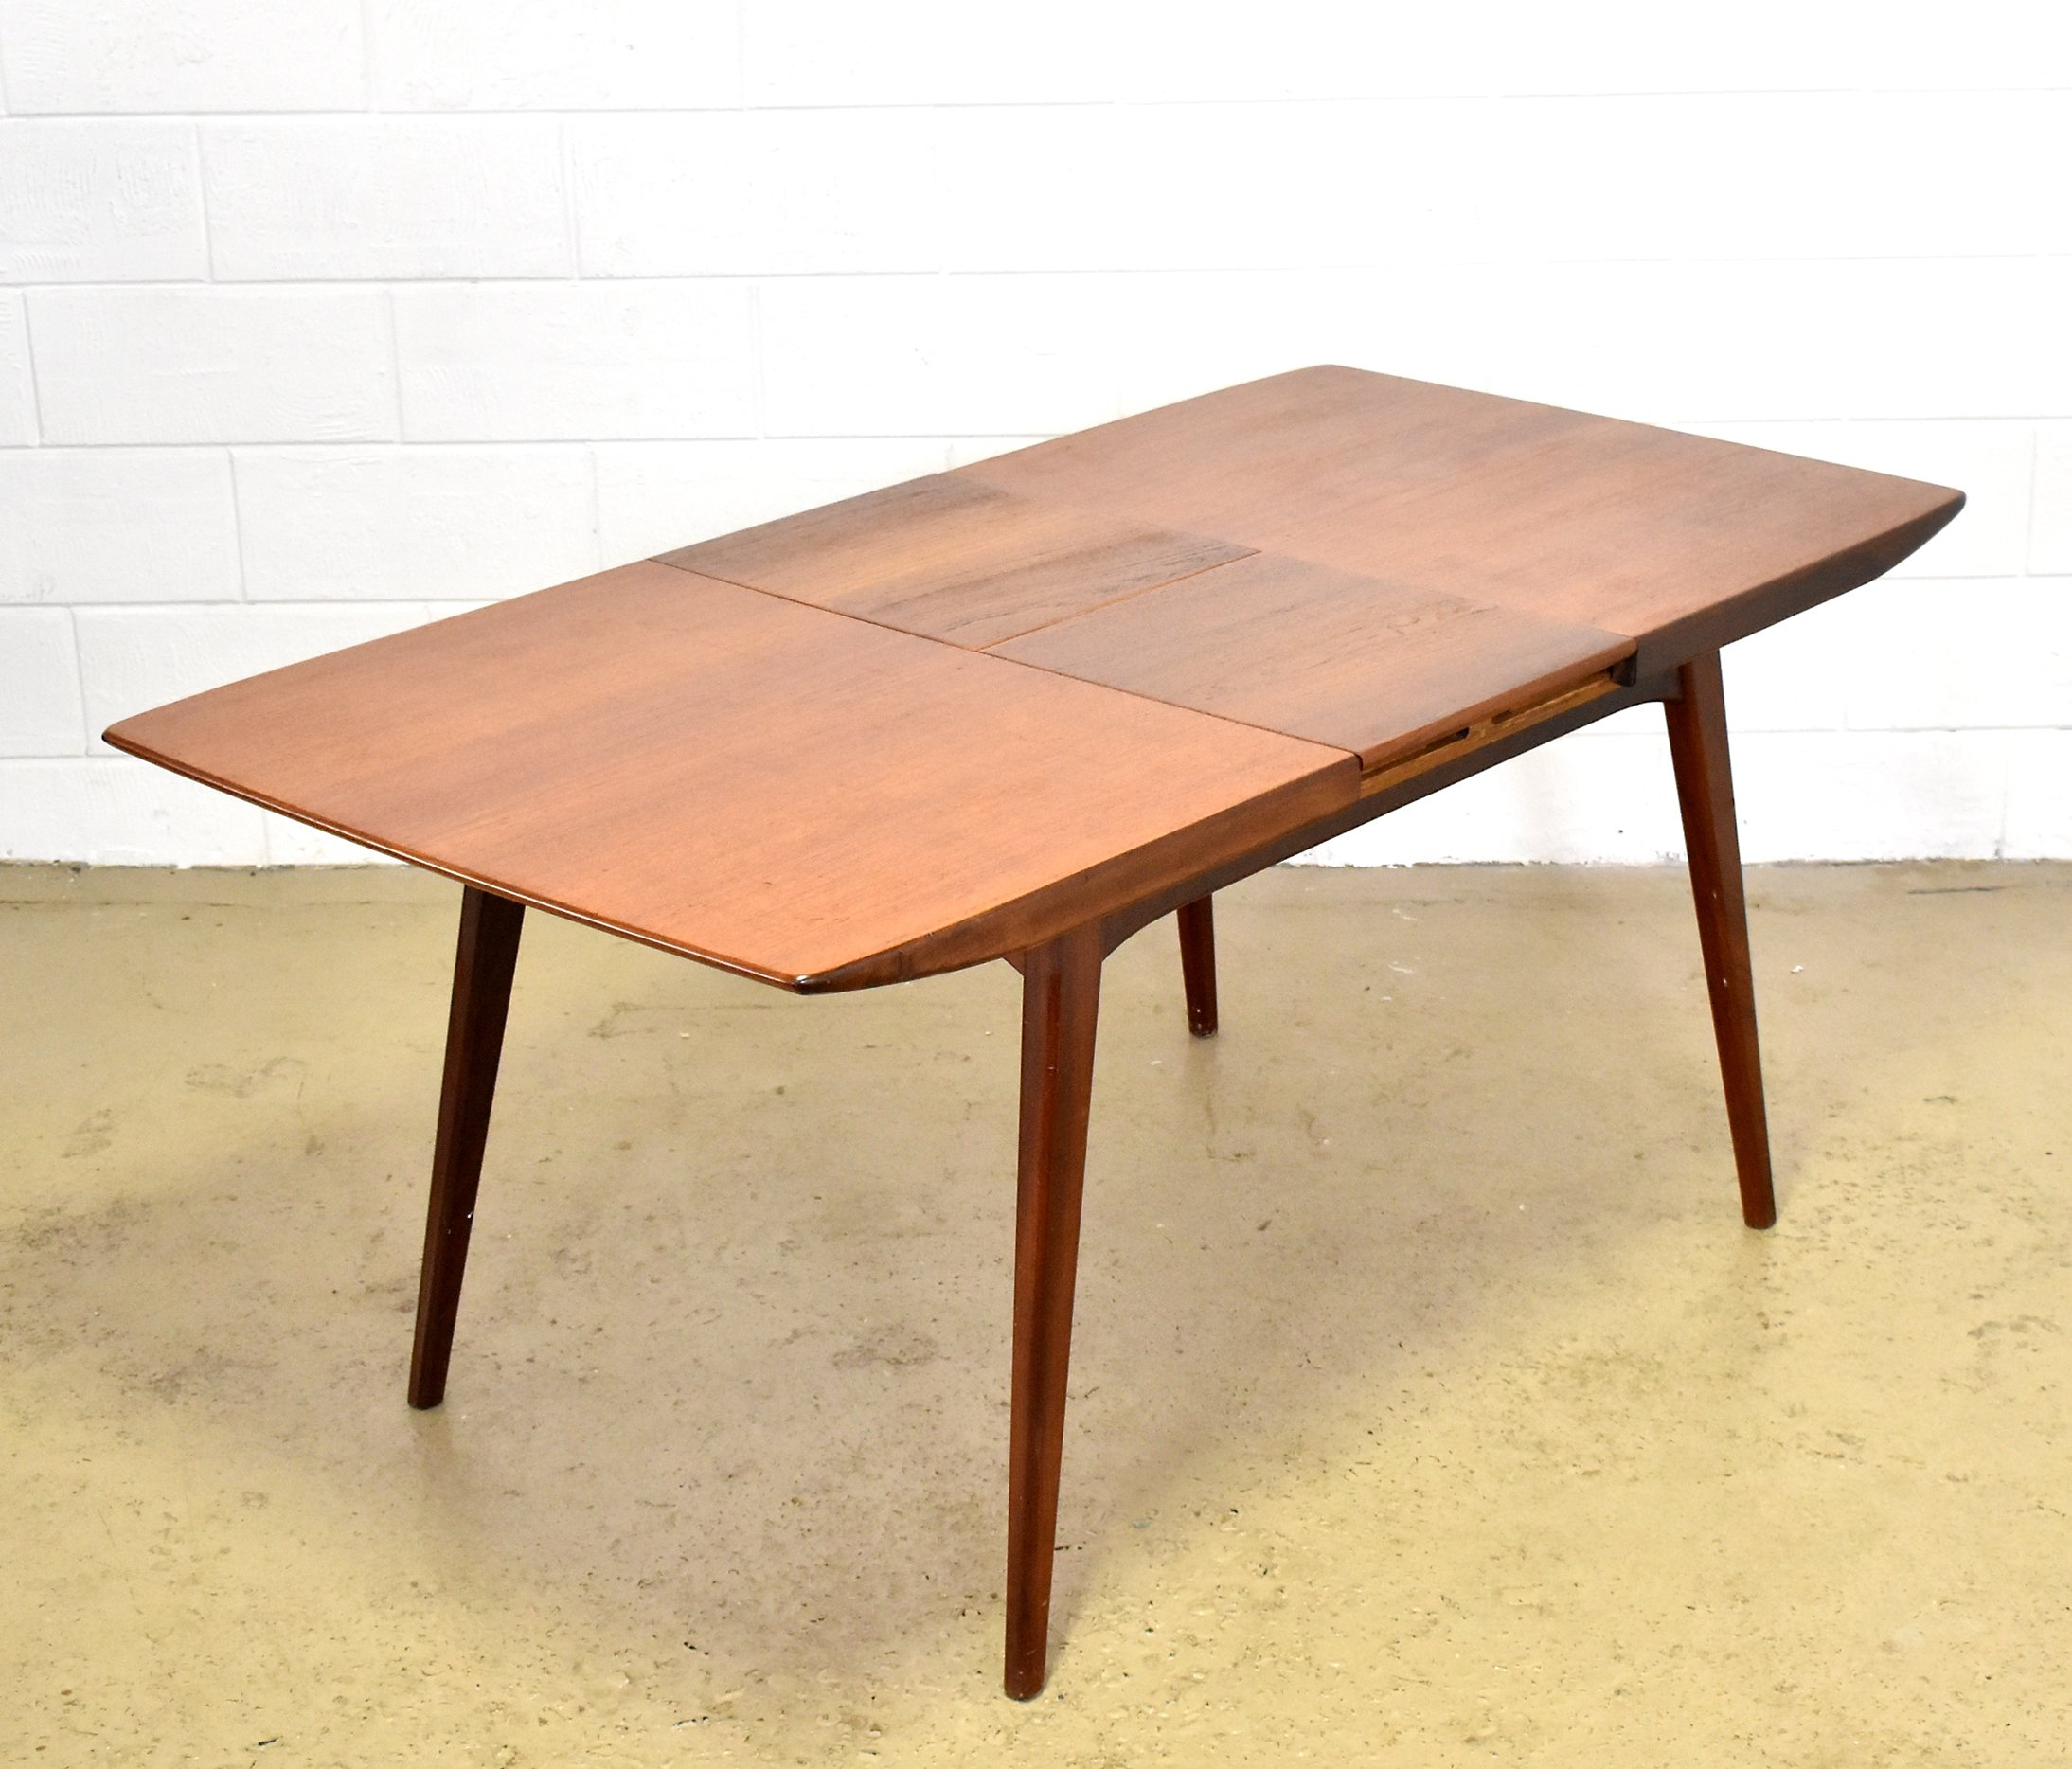 Dining Table By Louis Van Teeffelen For Wébé 1960s